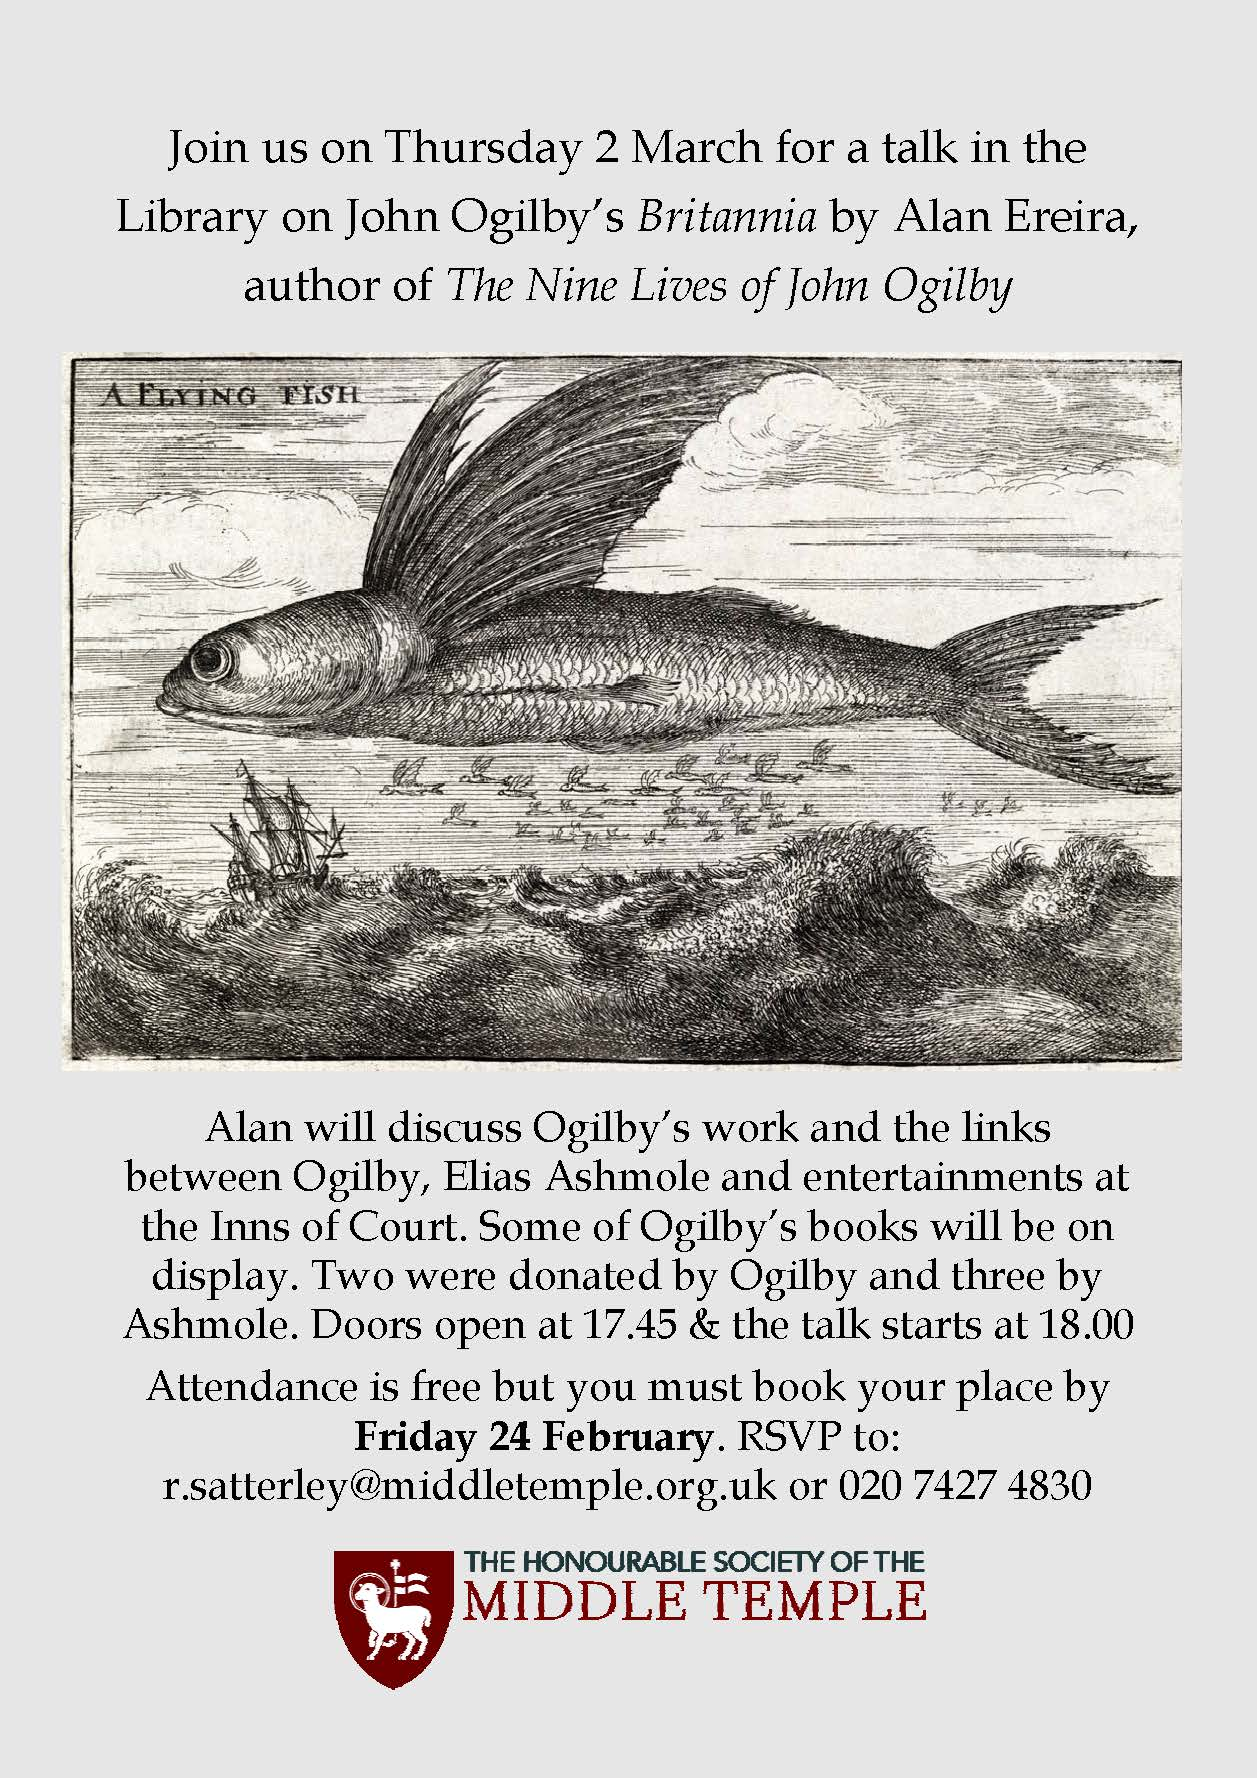 Flyer advertising Ogilby talk